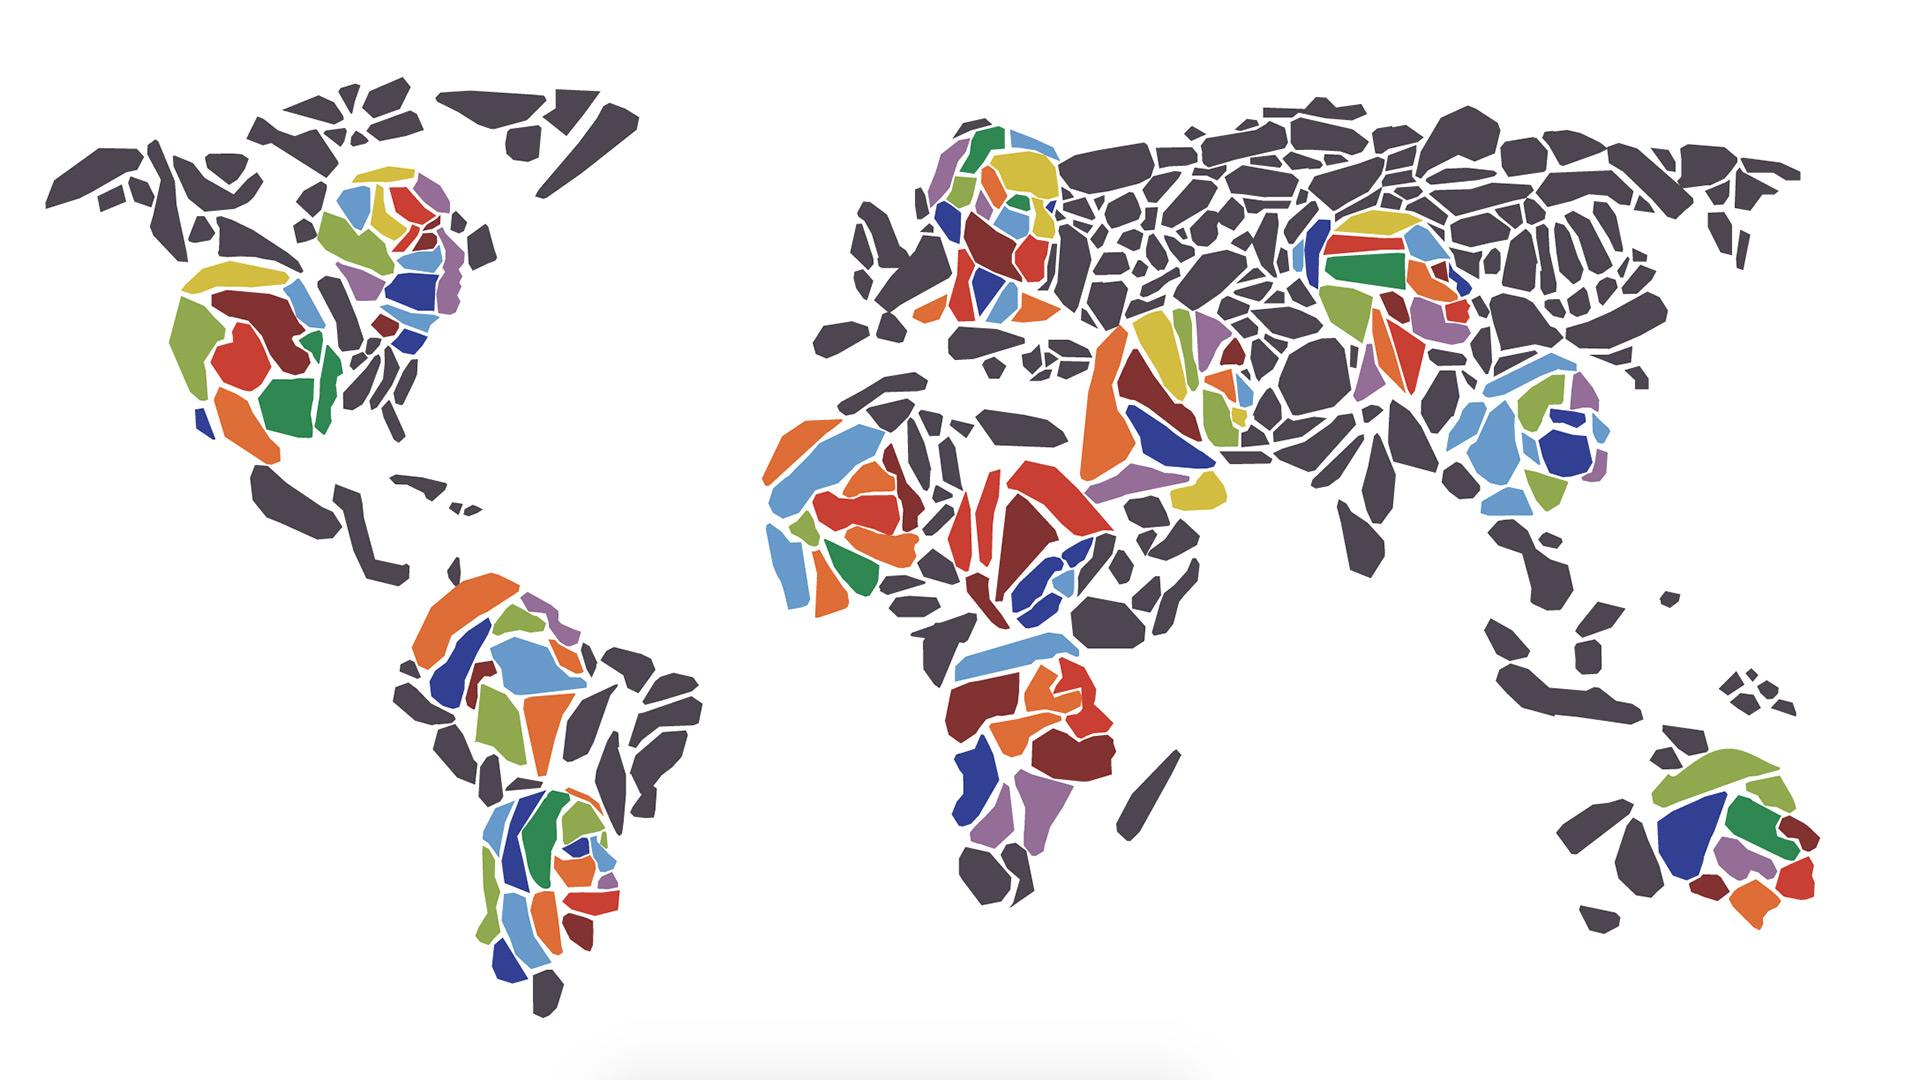 Illustration of the world map by Brian G. Payne